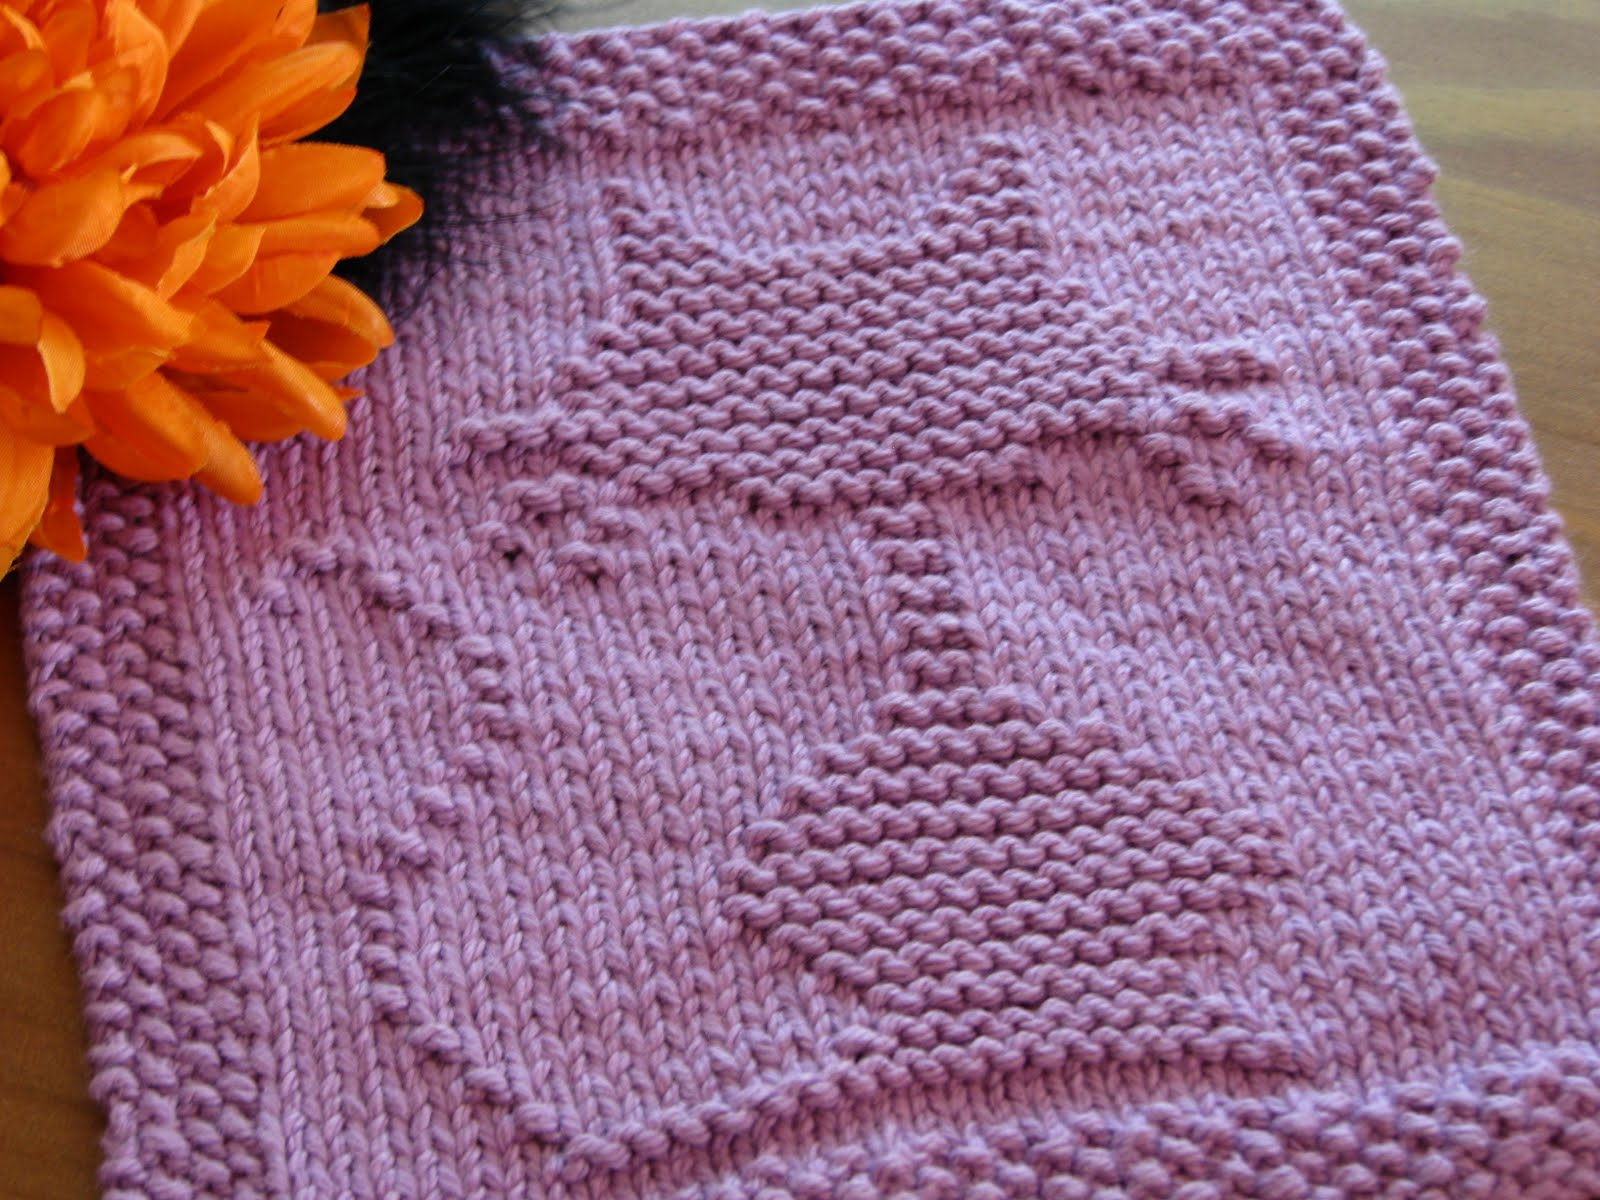 Knit Dishcloth Pattern Free : One Crafty Mama: Halloween Cat Dishcloth